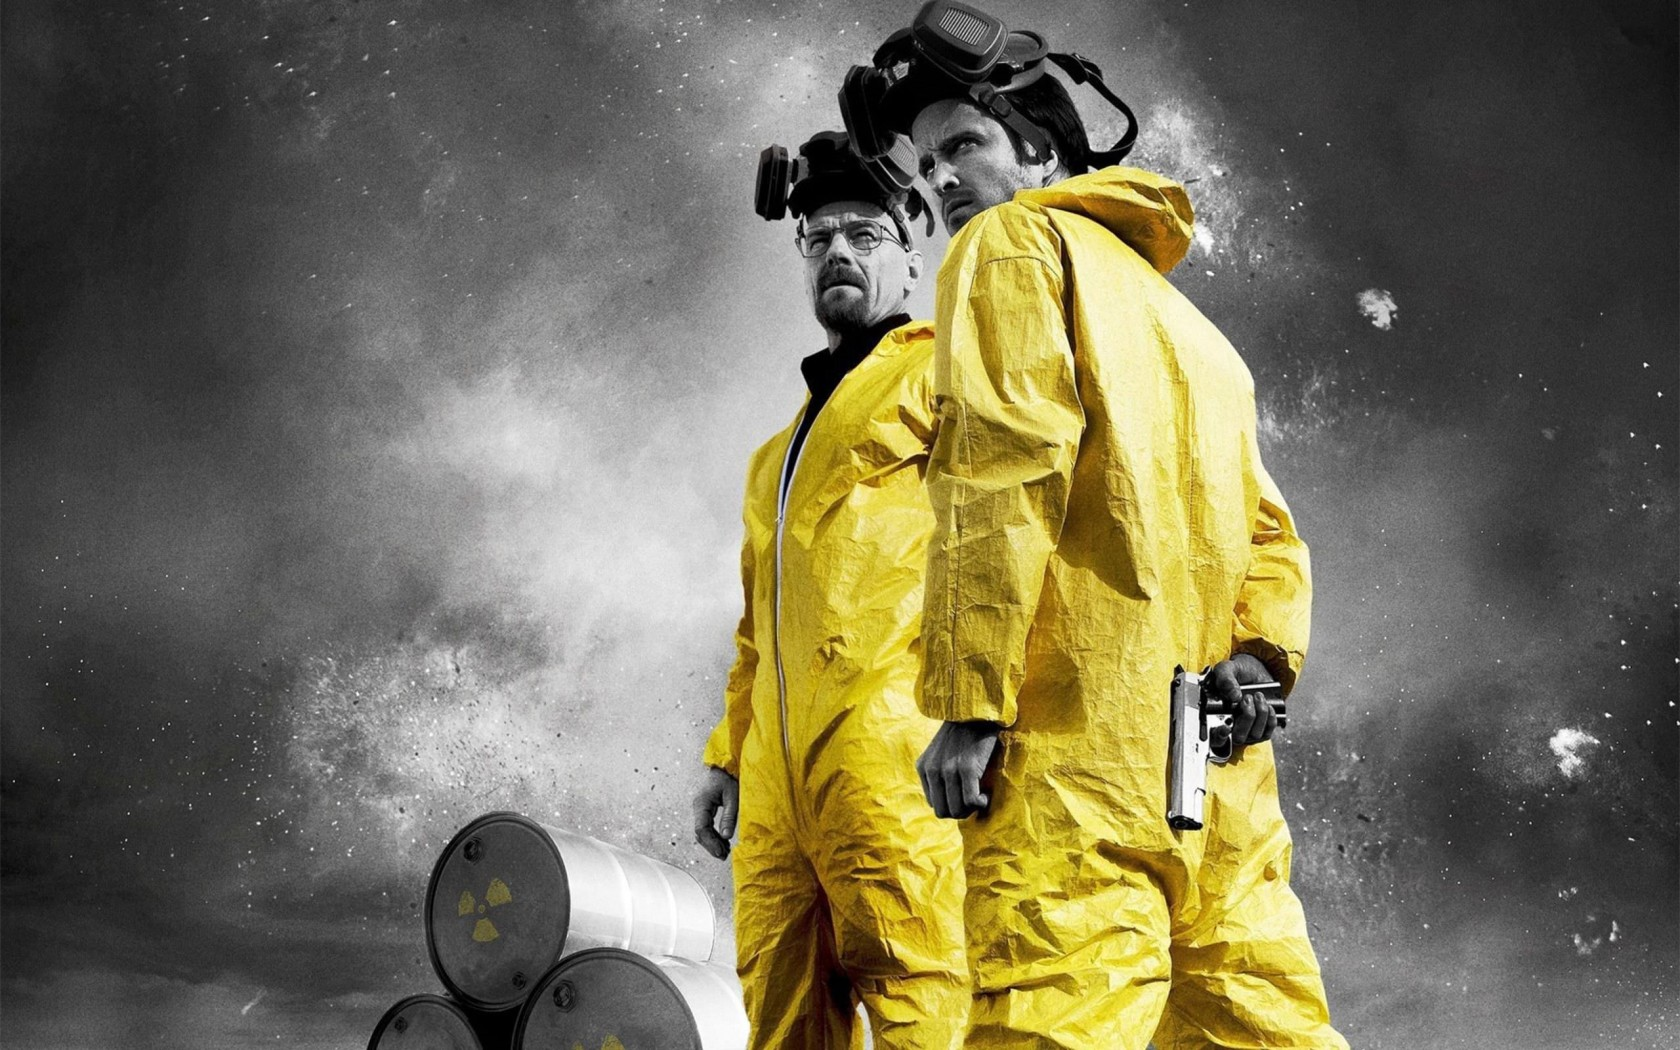 Breaking Bad - Jesse & Walt Wallpaper for Desktop 1680x1050